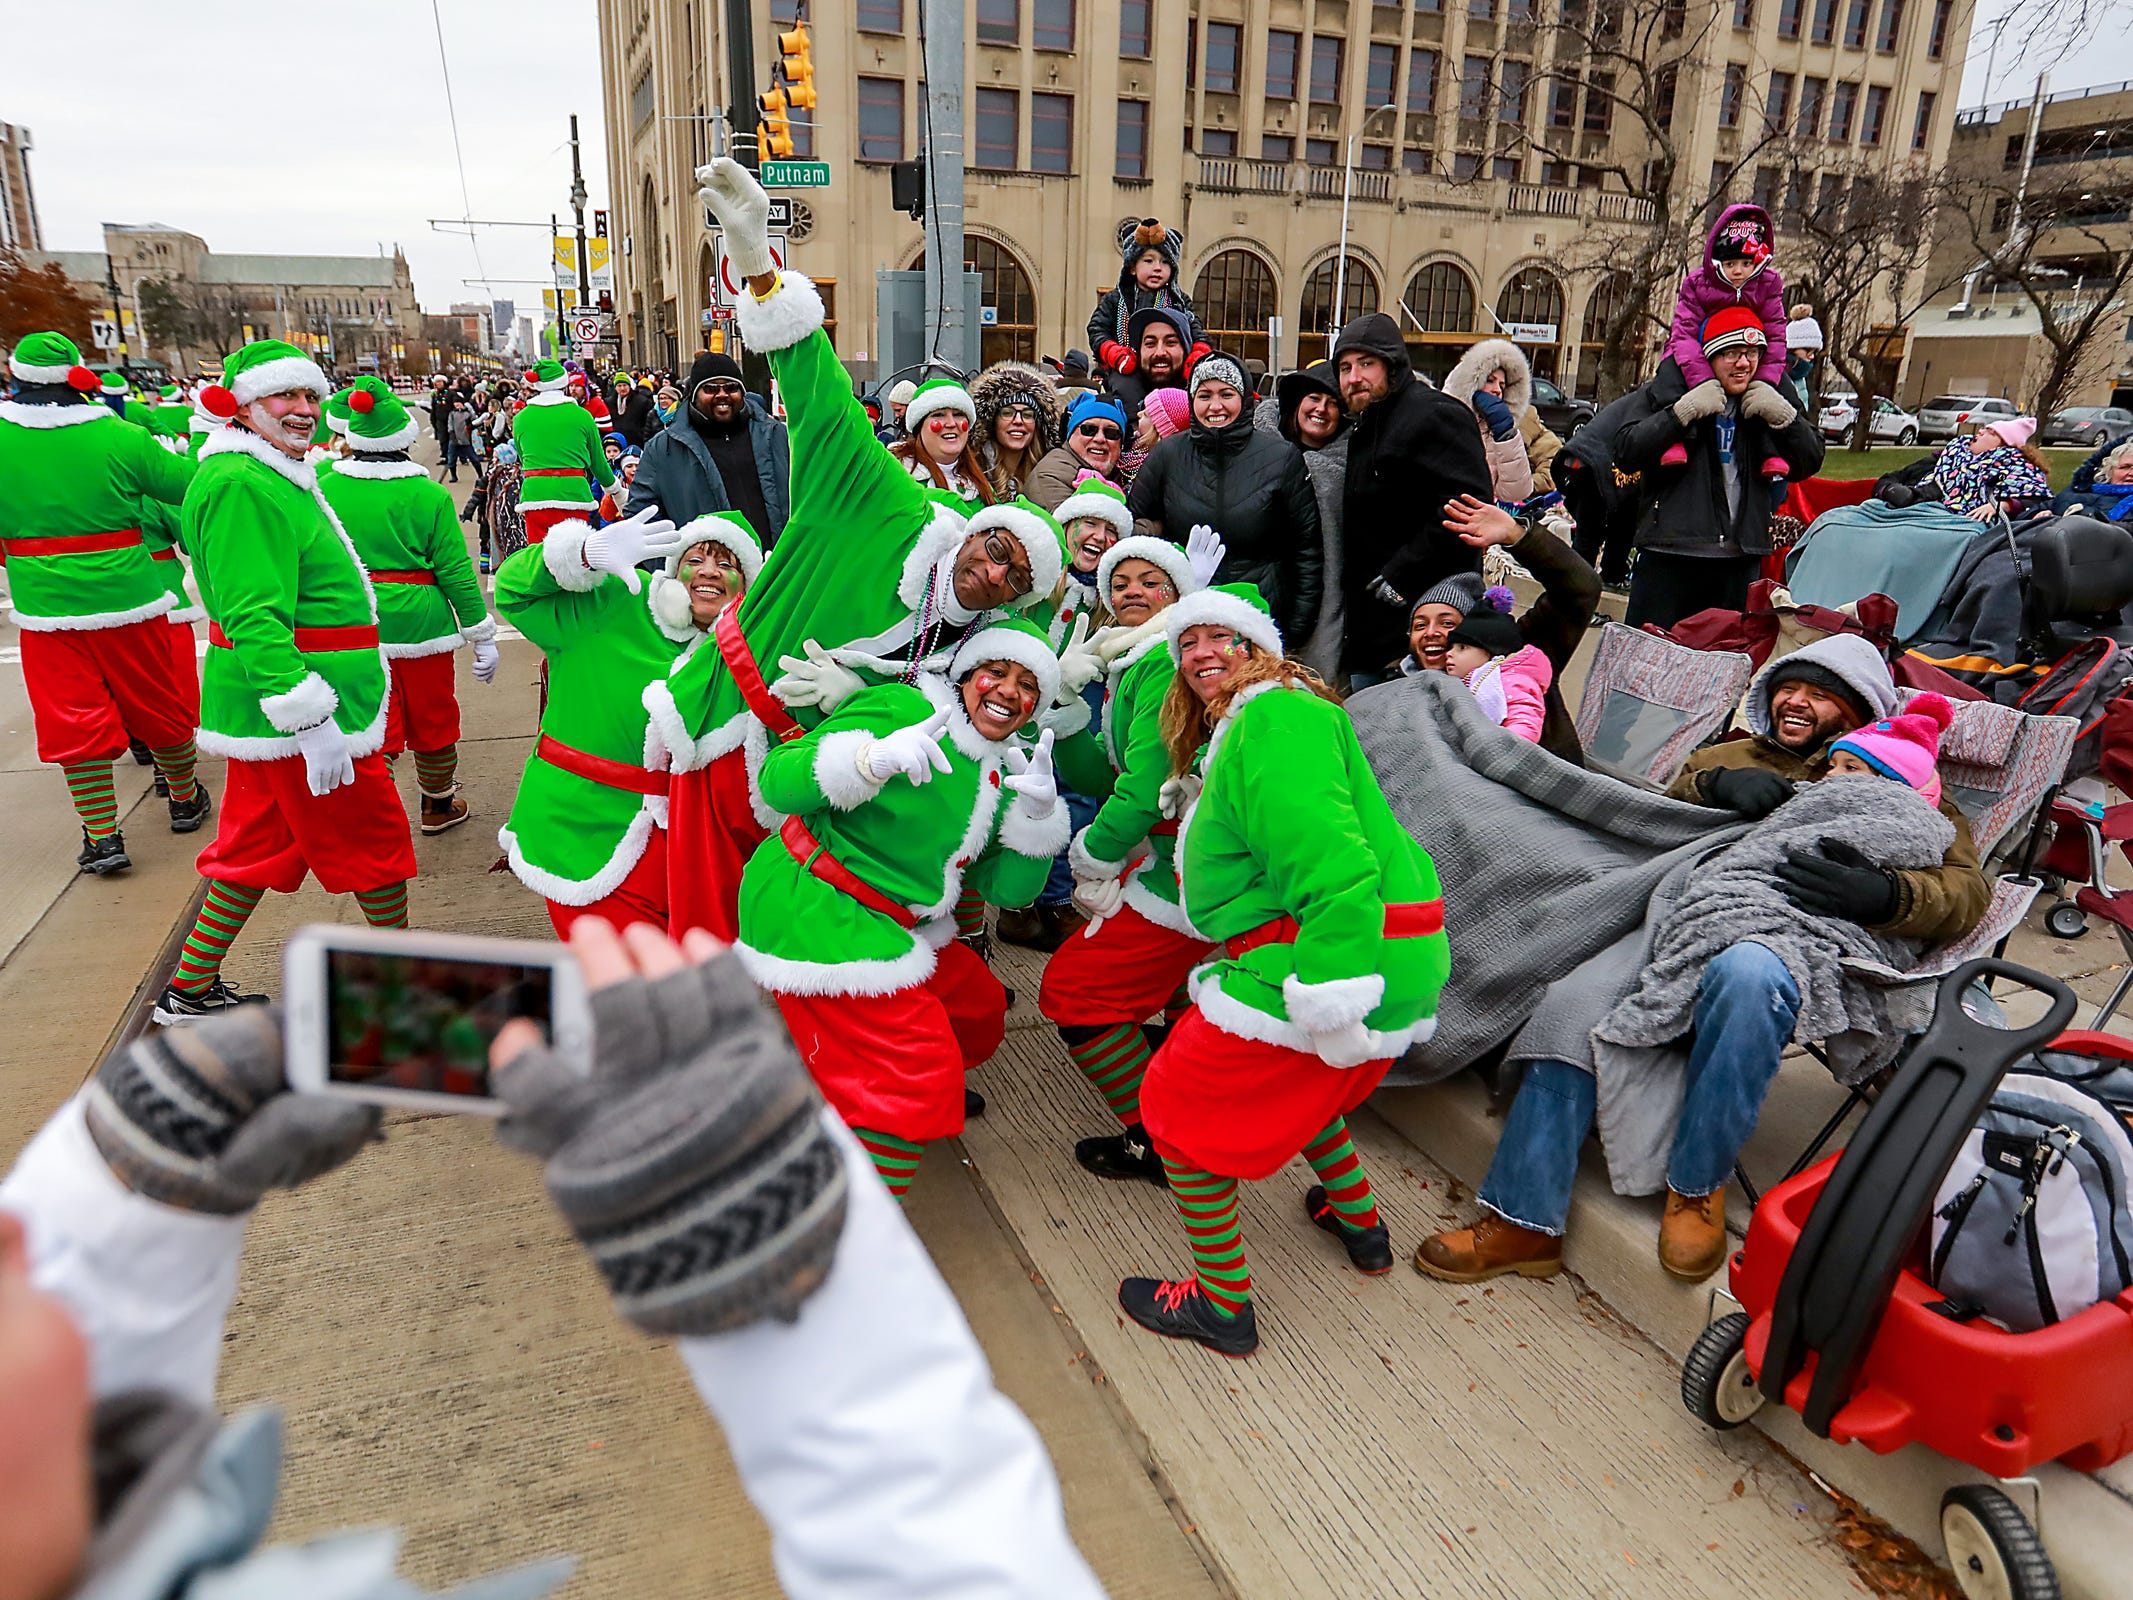 Santa's elves take a photo with the crowd during America's Thanksgiving Parade in Detroit on Thursday, Nov. 22, 2018.